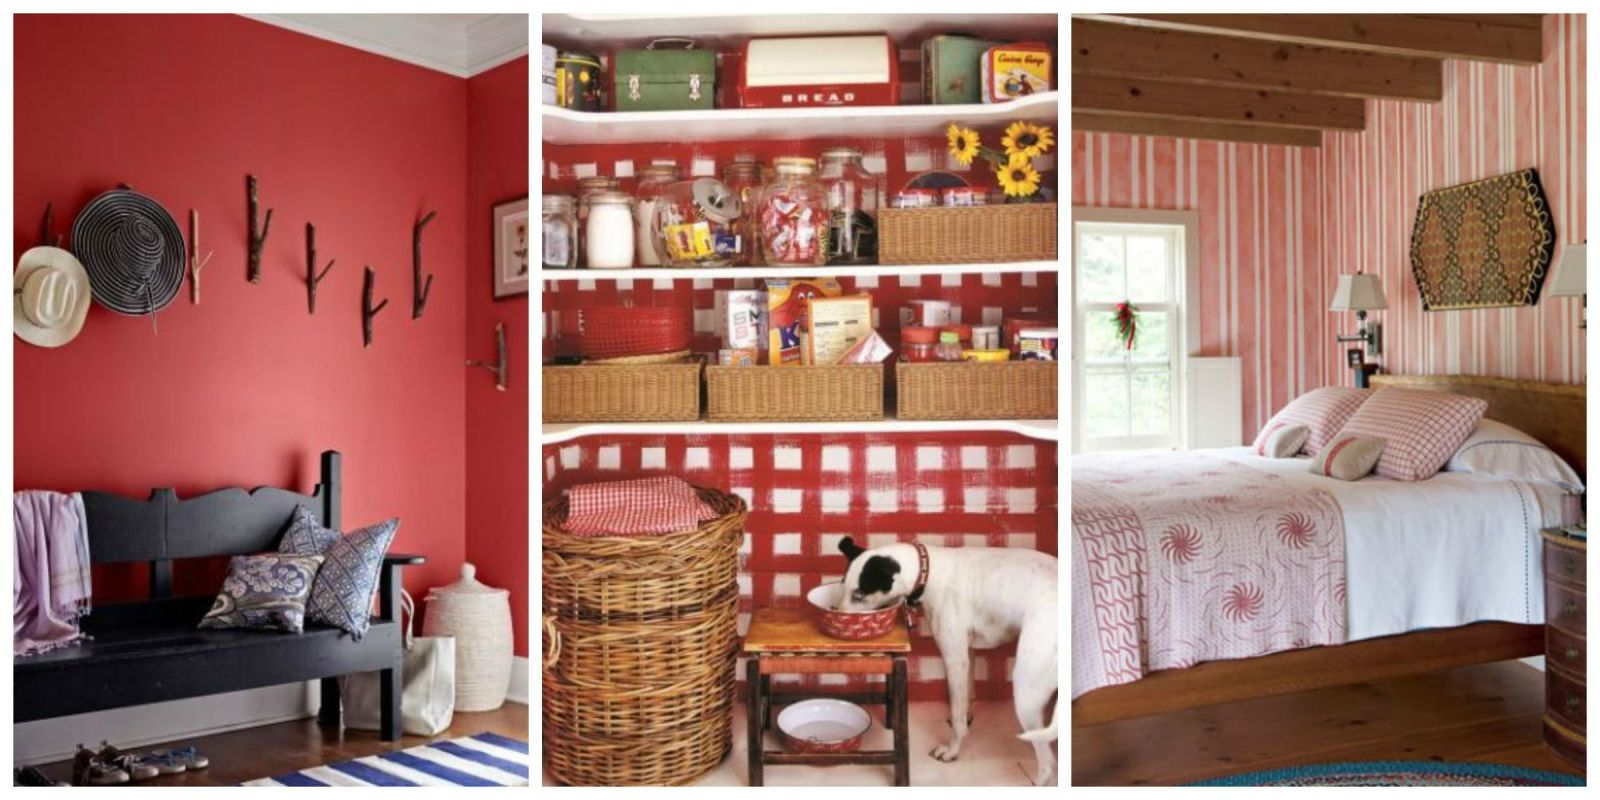 Living Room Decorating Ideas Red Walls decorating with red - ideas for red rooms and home decor